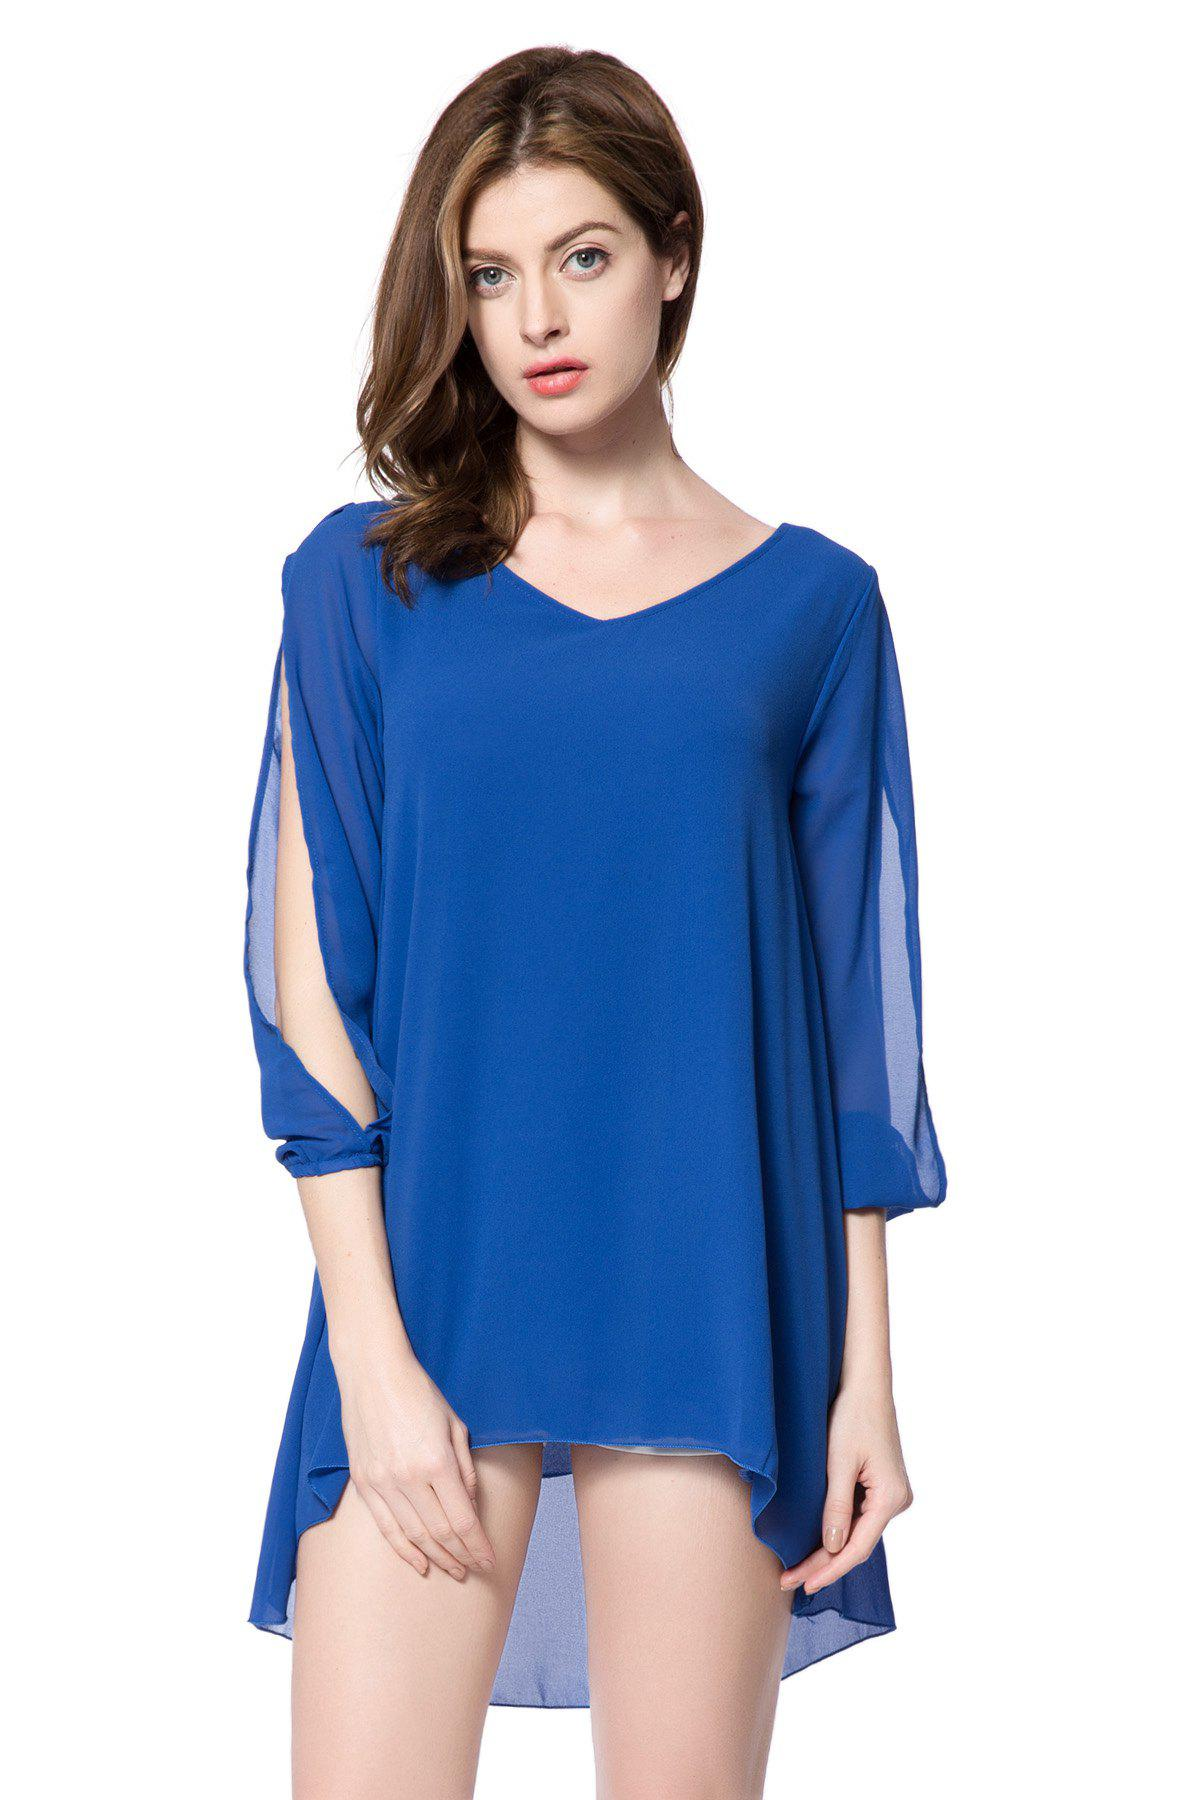 Stylish V-Neck Hollow Out 3/4 Sleeve Chiffon Dress For Women - SAPPHIRE BLUE M